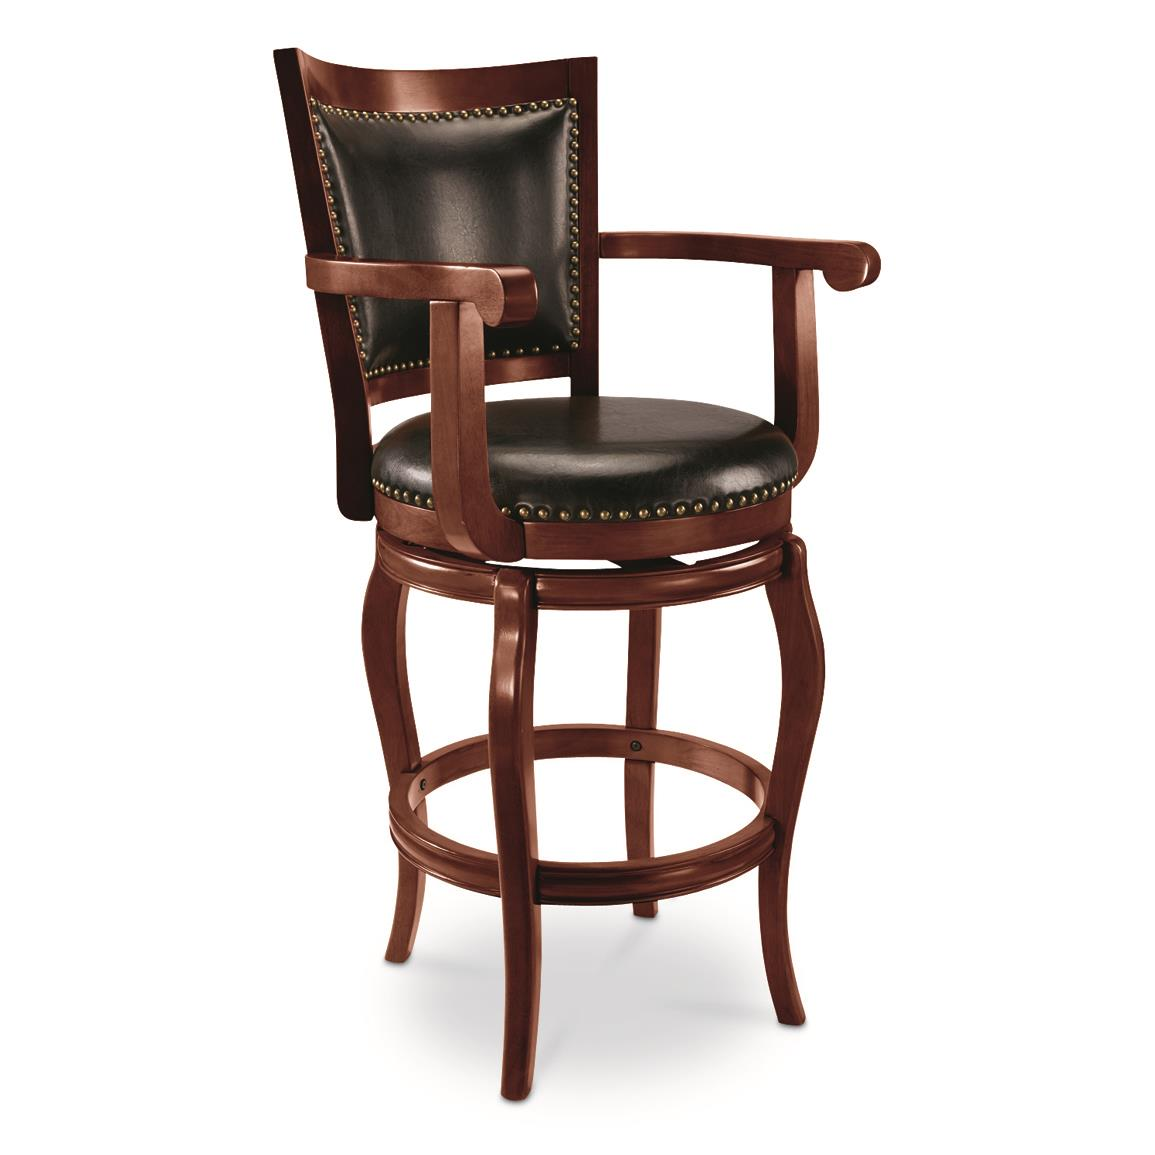 CASTLECREEK Oversized Chase Bar Stool, Espresso